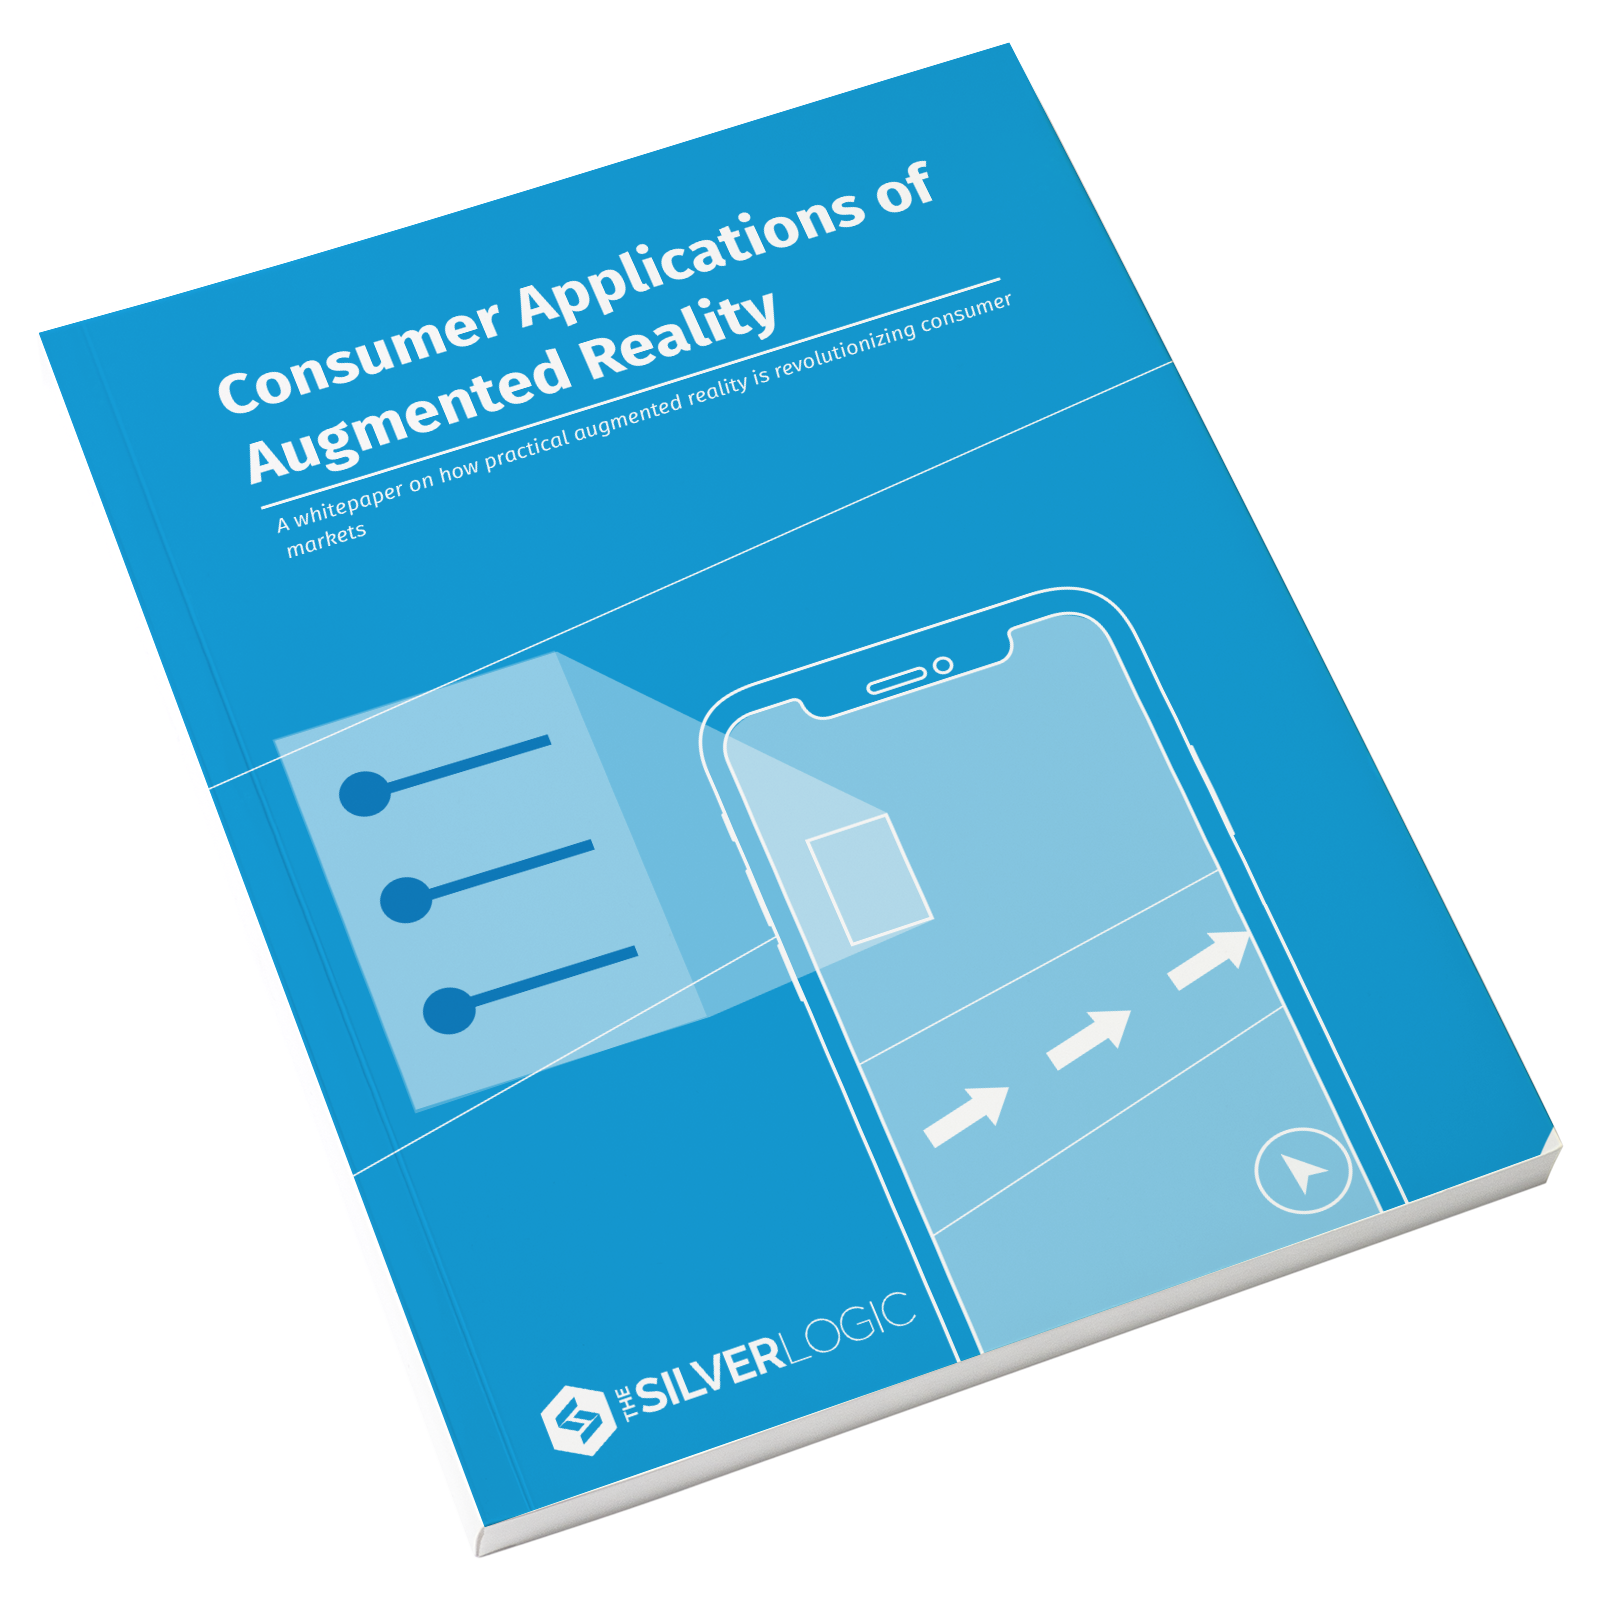 FREE White Paper - Business to Consumer Applications of Augmented Reality Technologies